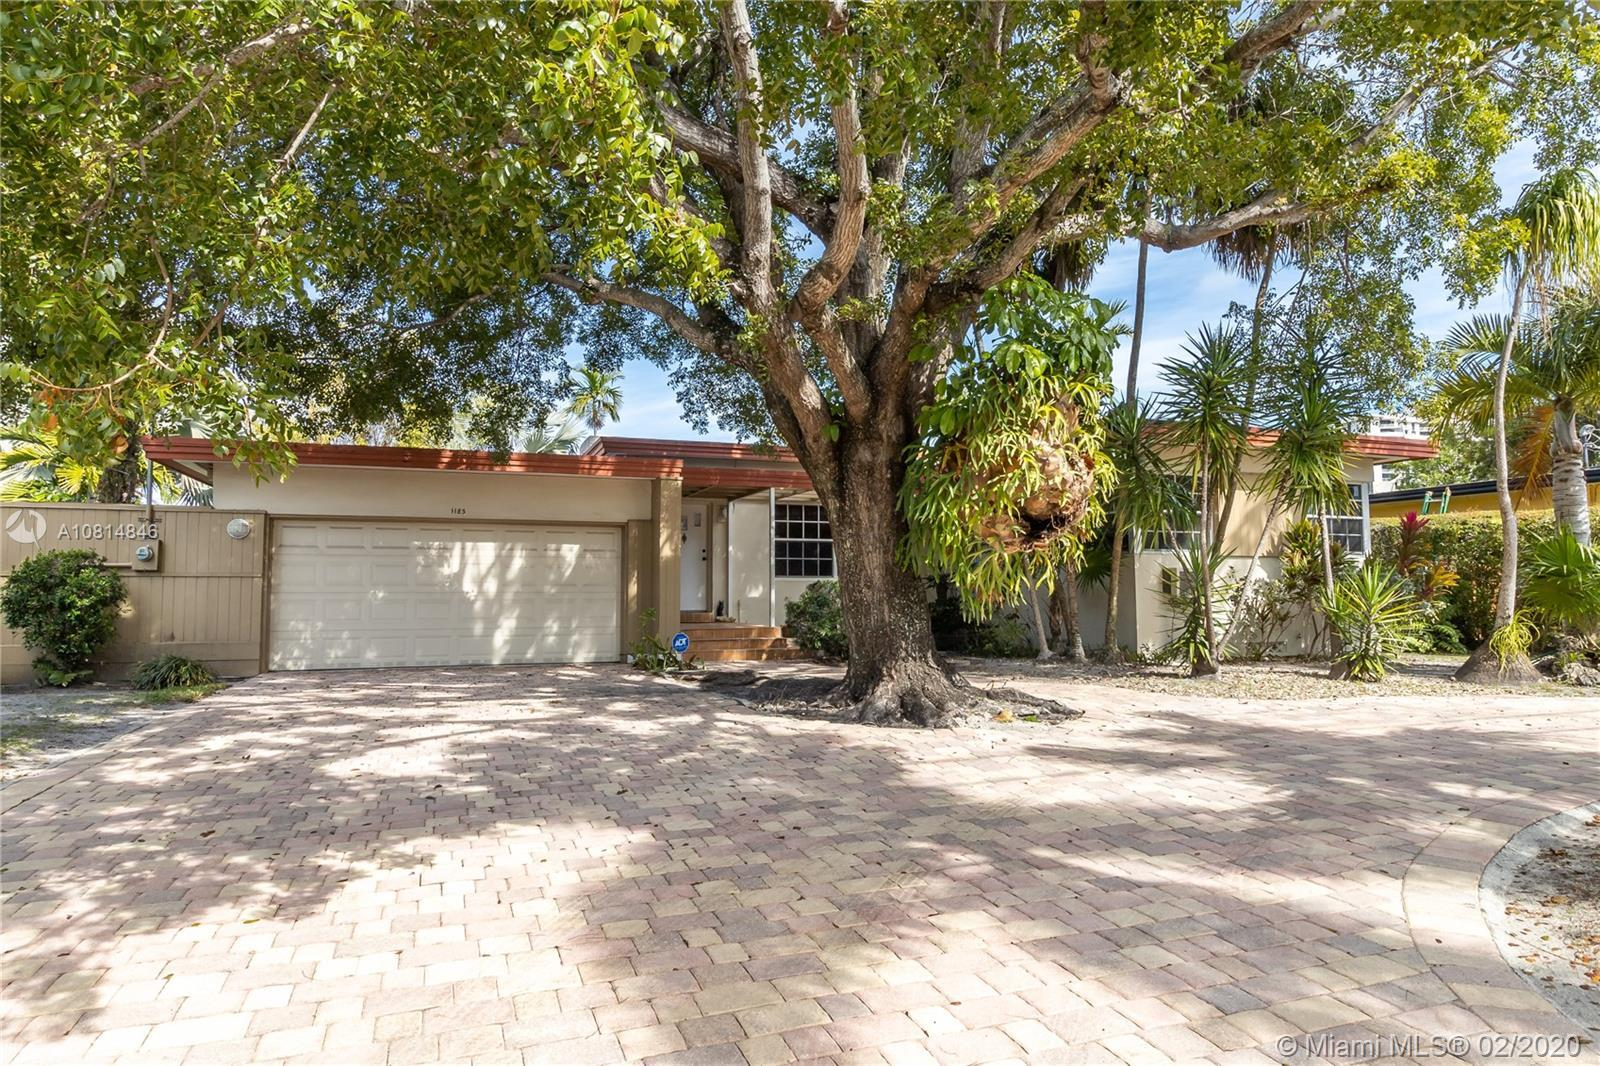 Miami Shores, mid-century 2/2 with a pool and 2 car garage. 75' on the canal with a dock and no fixe